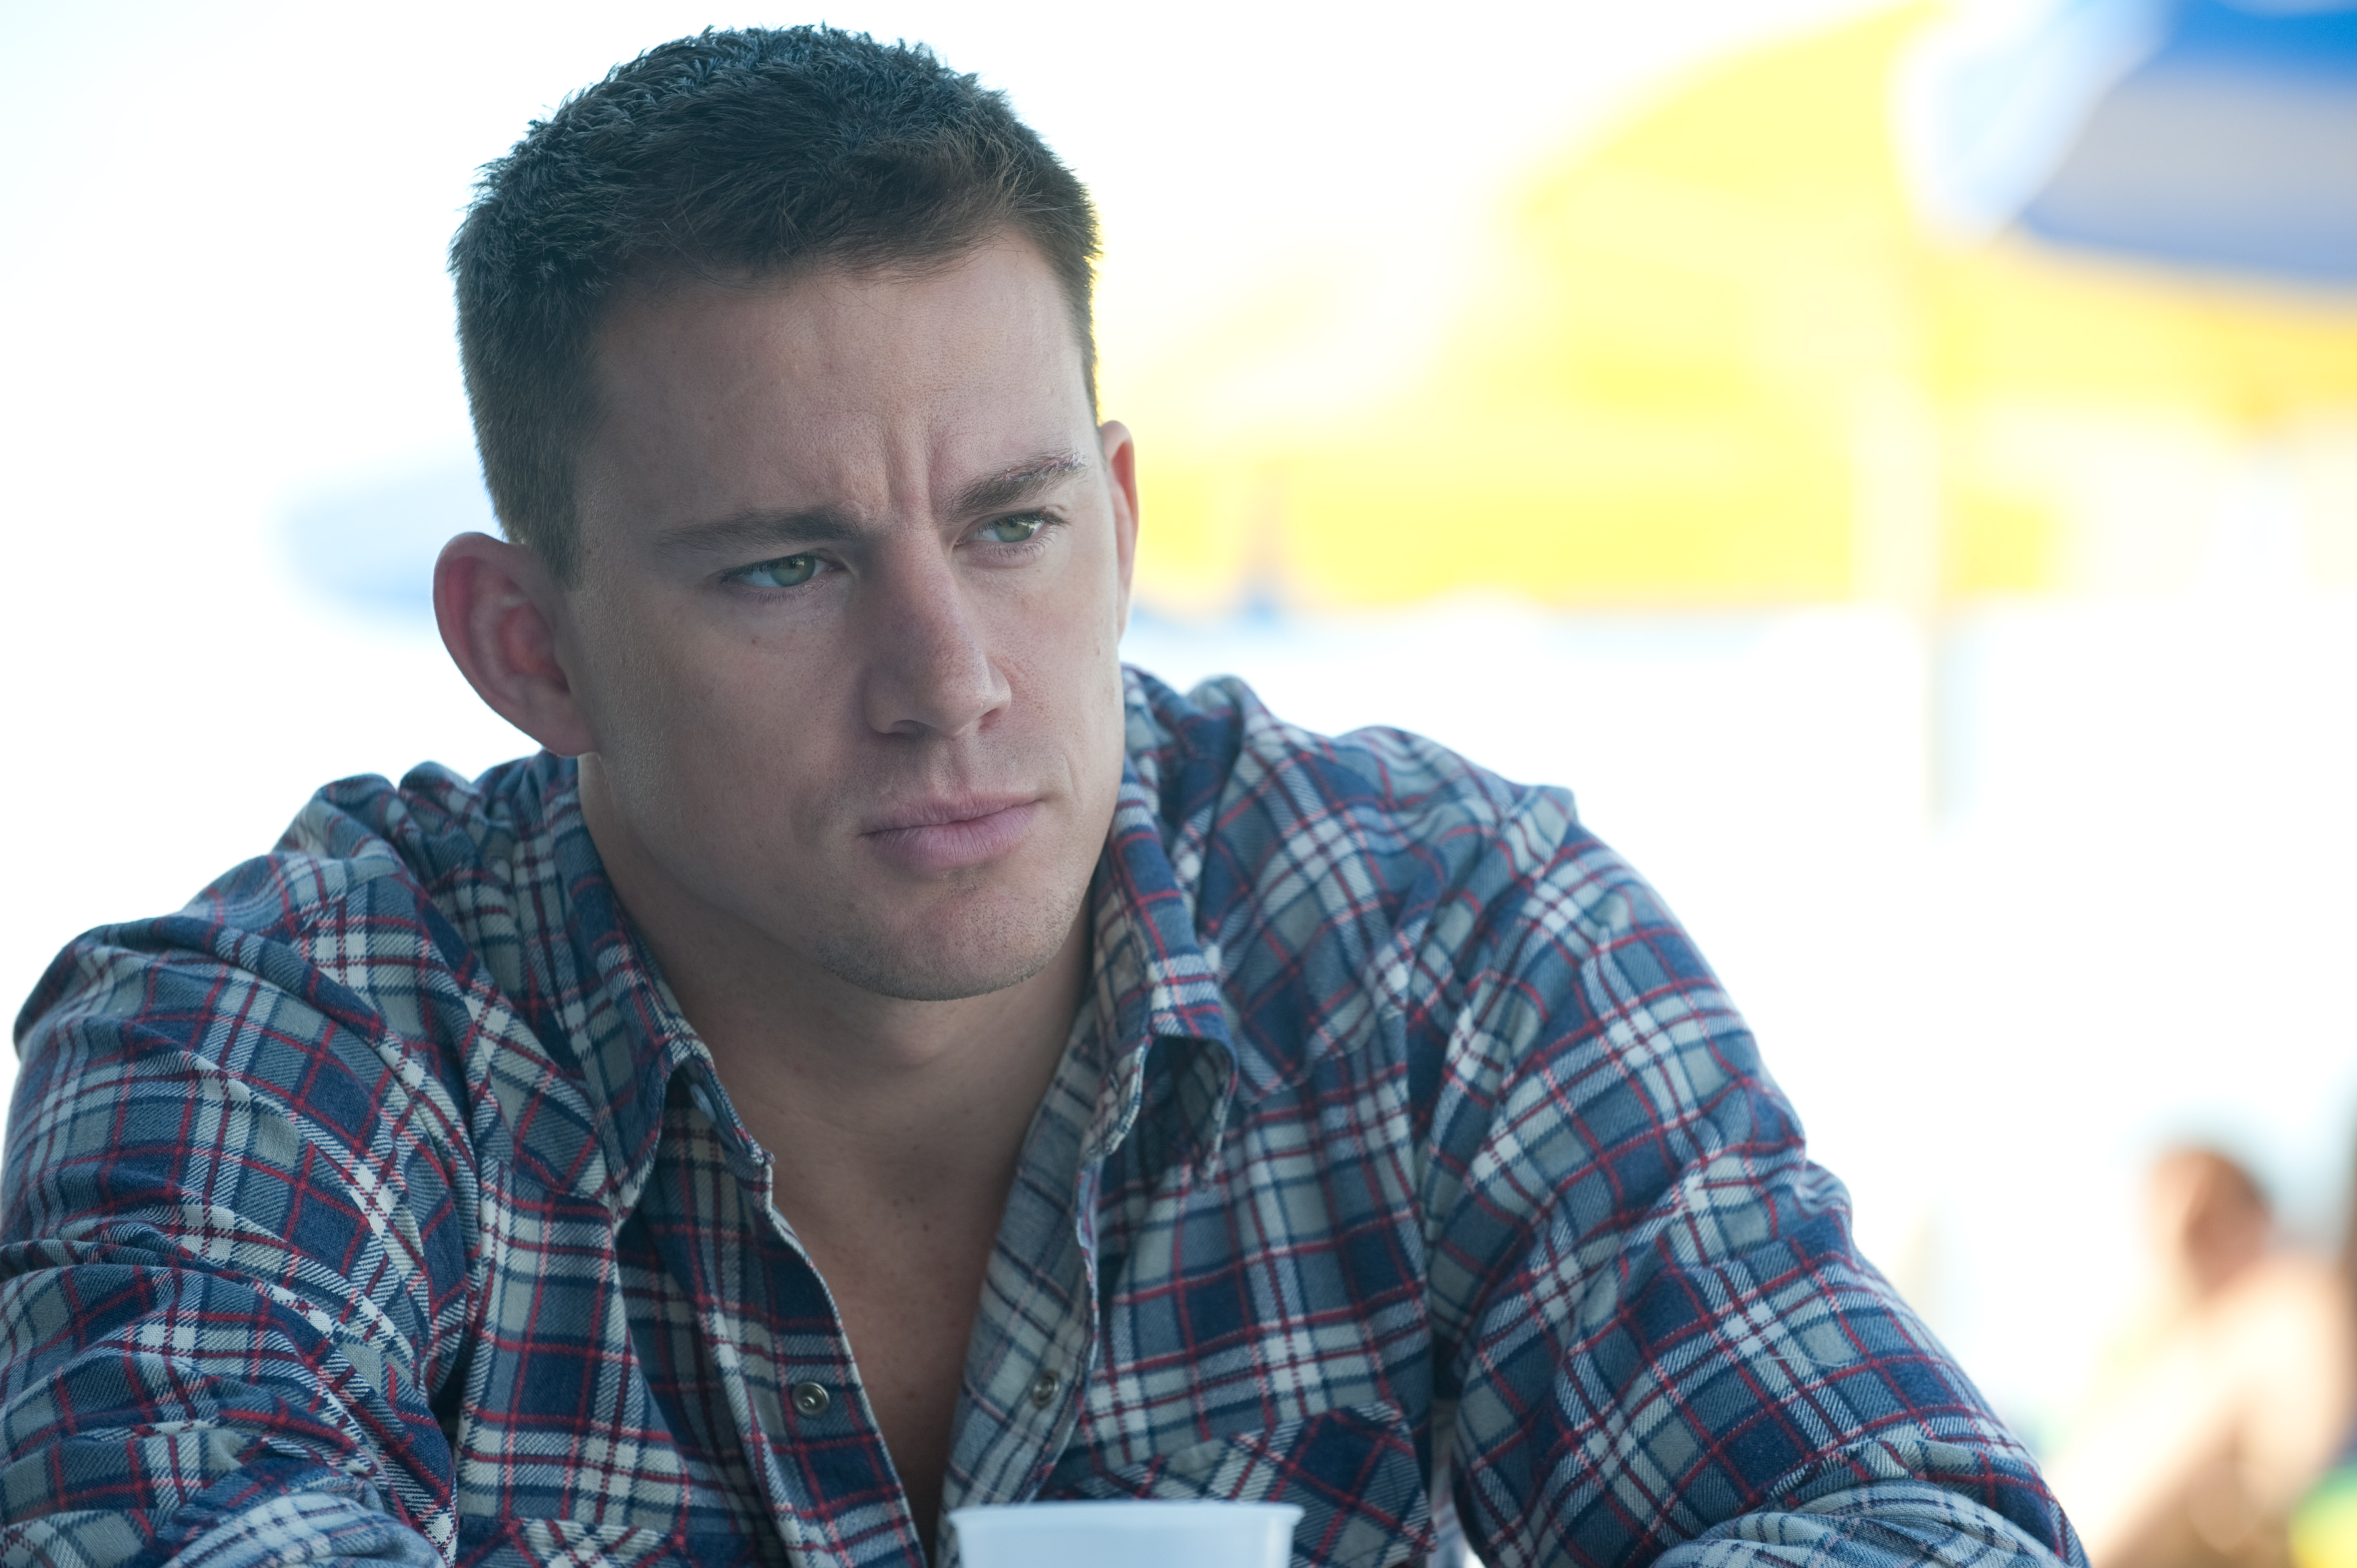 channing tatum wallpapers, pictures, images